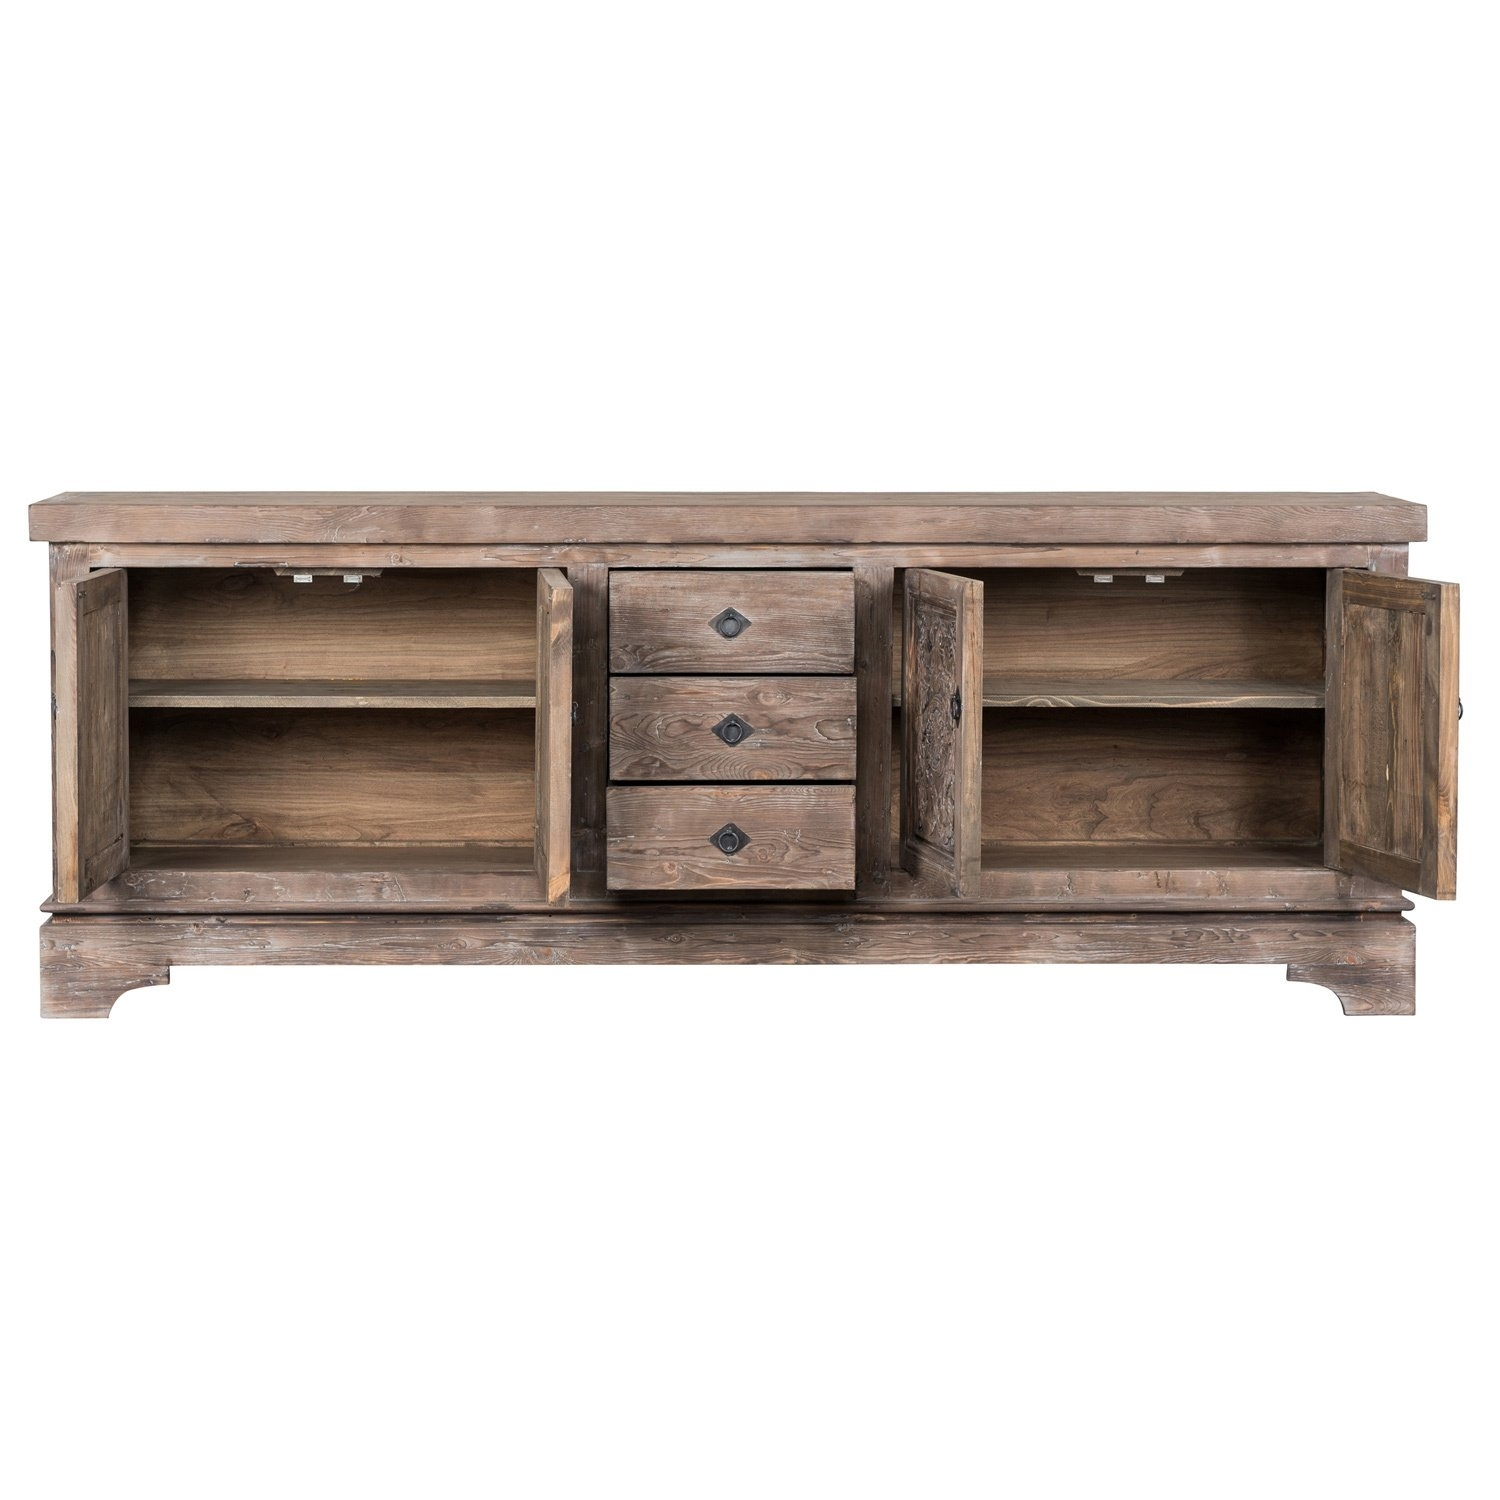 Shop Allen Rustic Taupe Reclaimed Pine 106 Inch Sideboardkosas Inside Recent Reclaimed Pine & Iron 4 Door Sideboards (View 7 of 20)